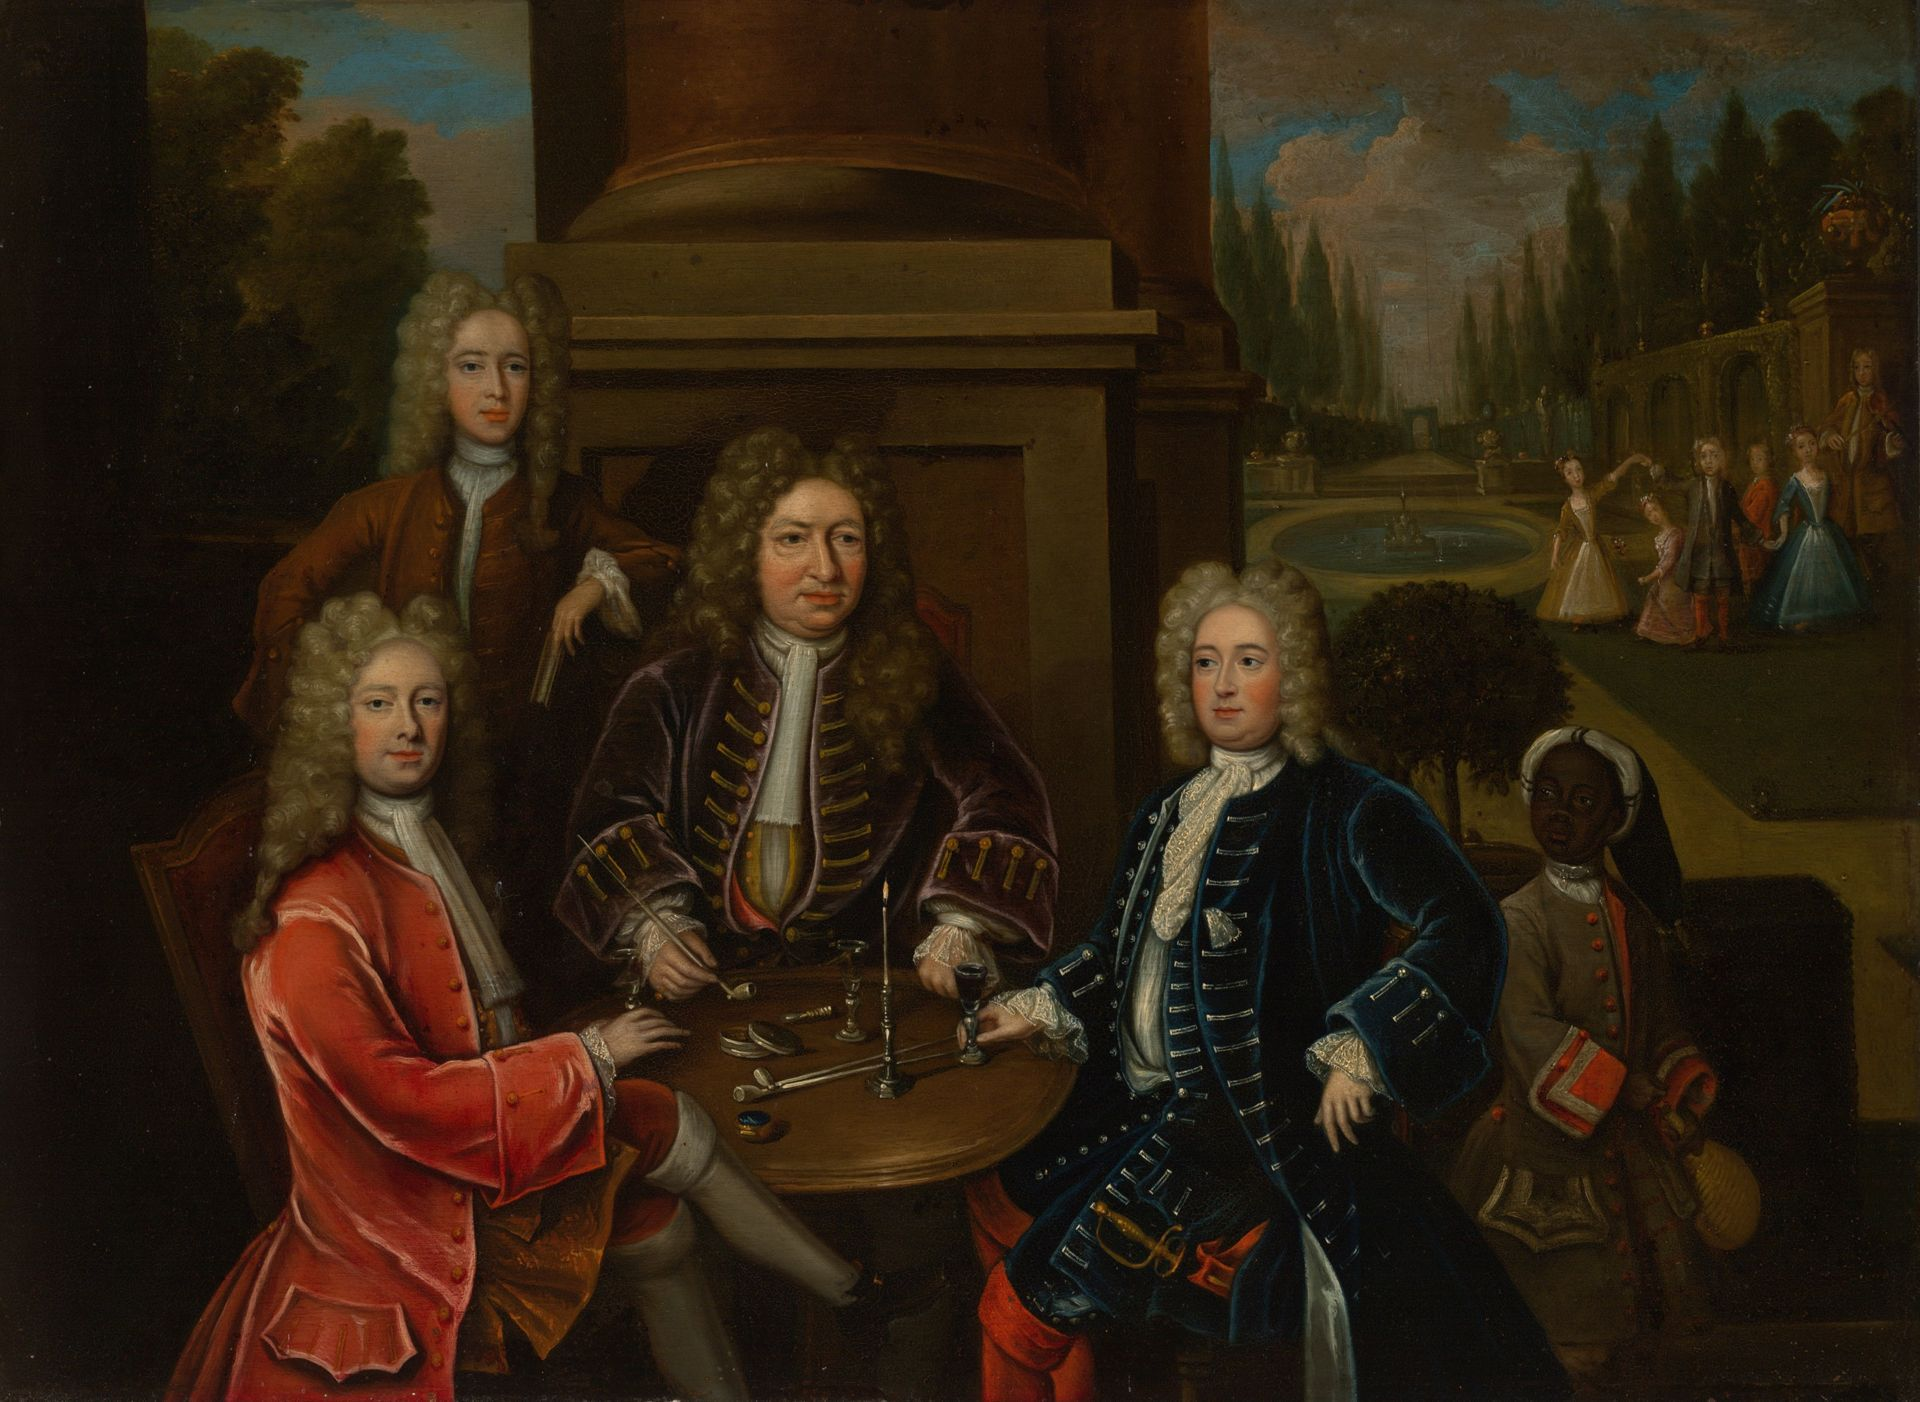 Unknown artist, Elihu Yale seated at table with the Second Duke of Devonshire and Lord James Cavendish, ca. 1708, oil on copper, Transfer from the Yale University Library, Gift of Mrs. Arthur W. Butler